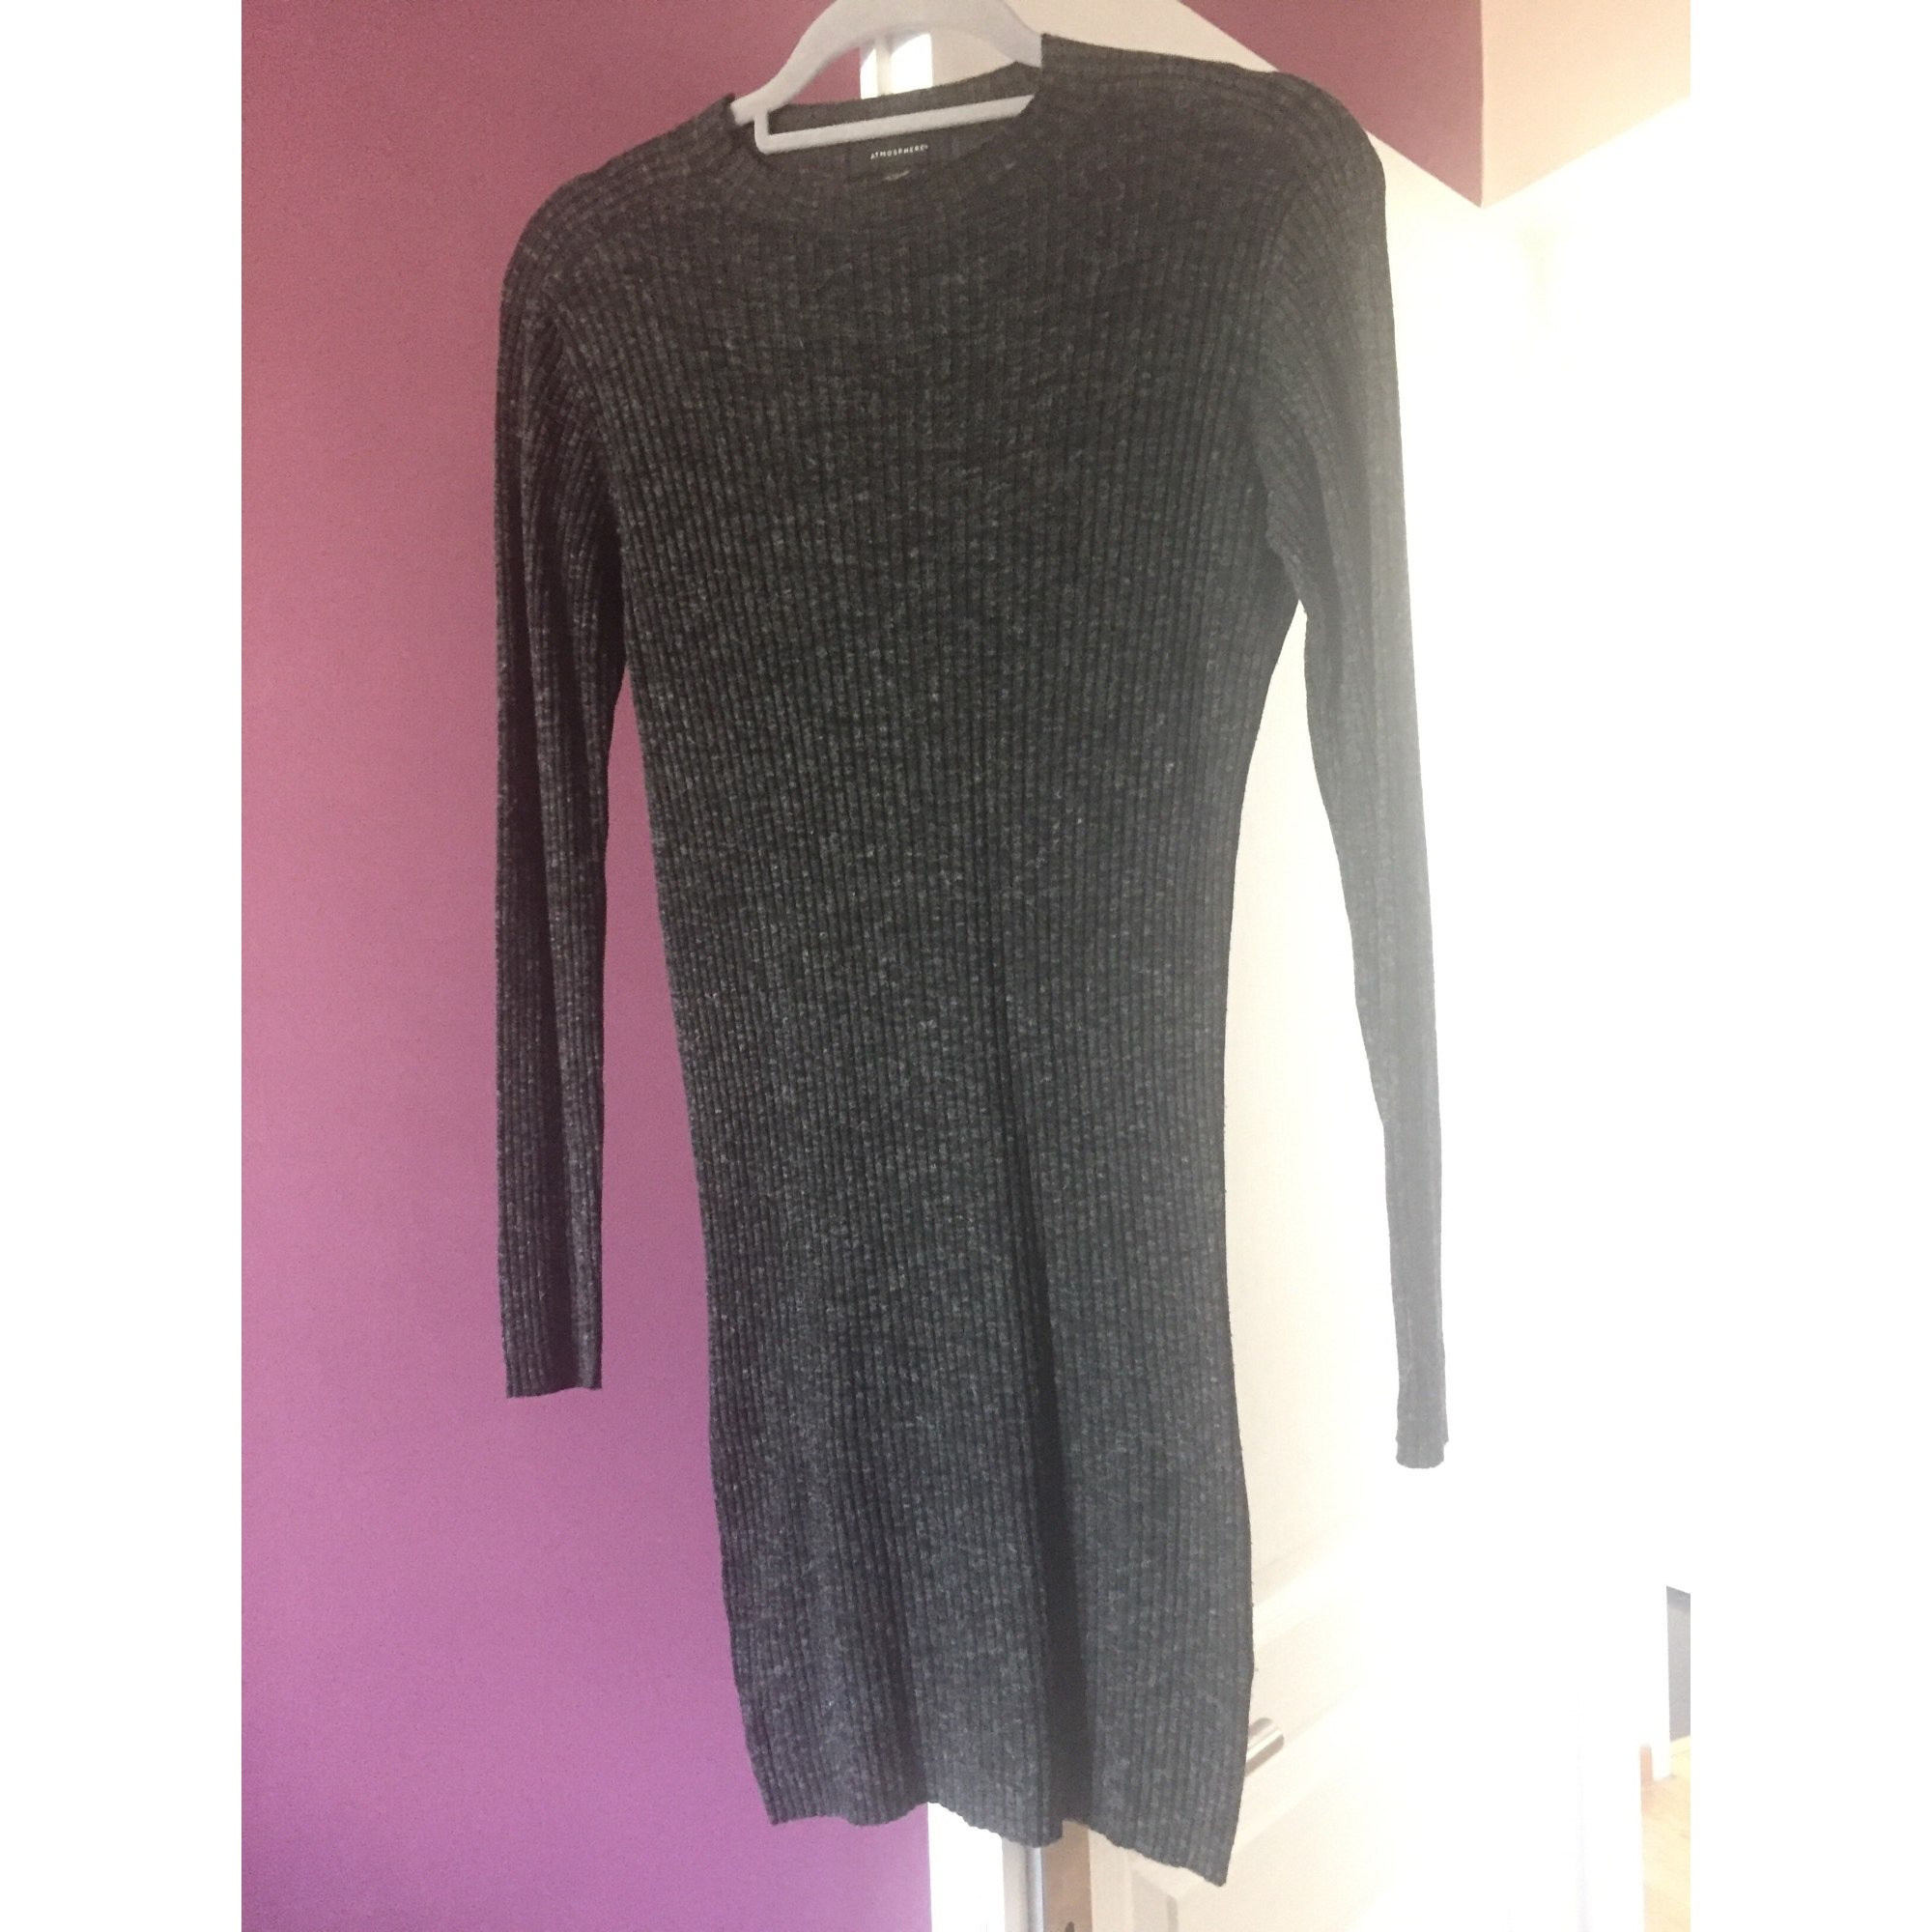 Robe courte & OTHER STORIES Gris, anthracite